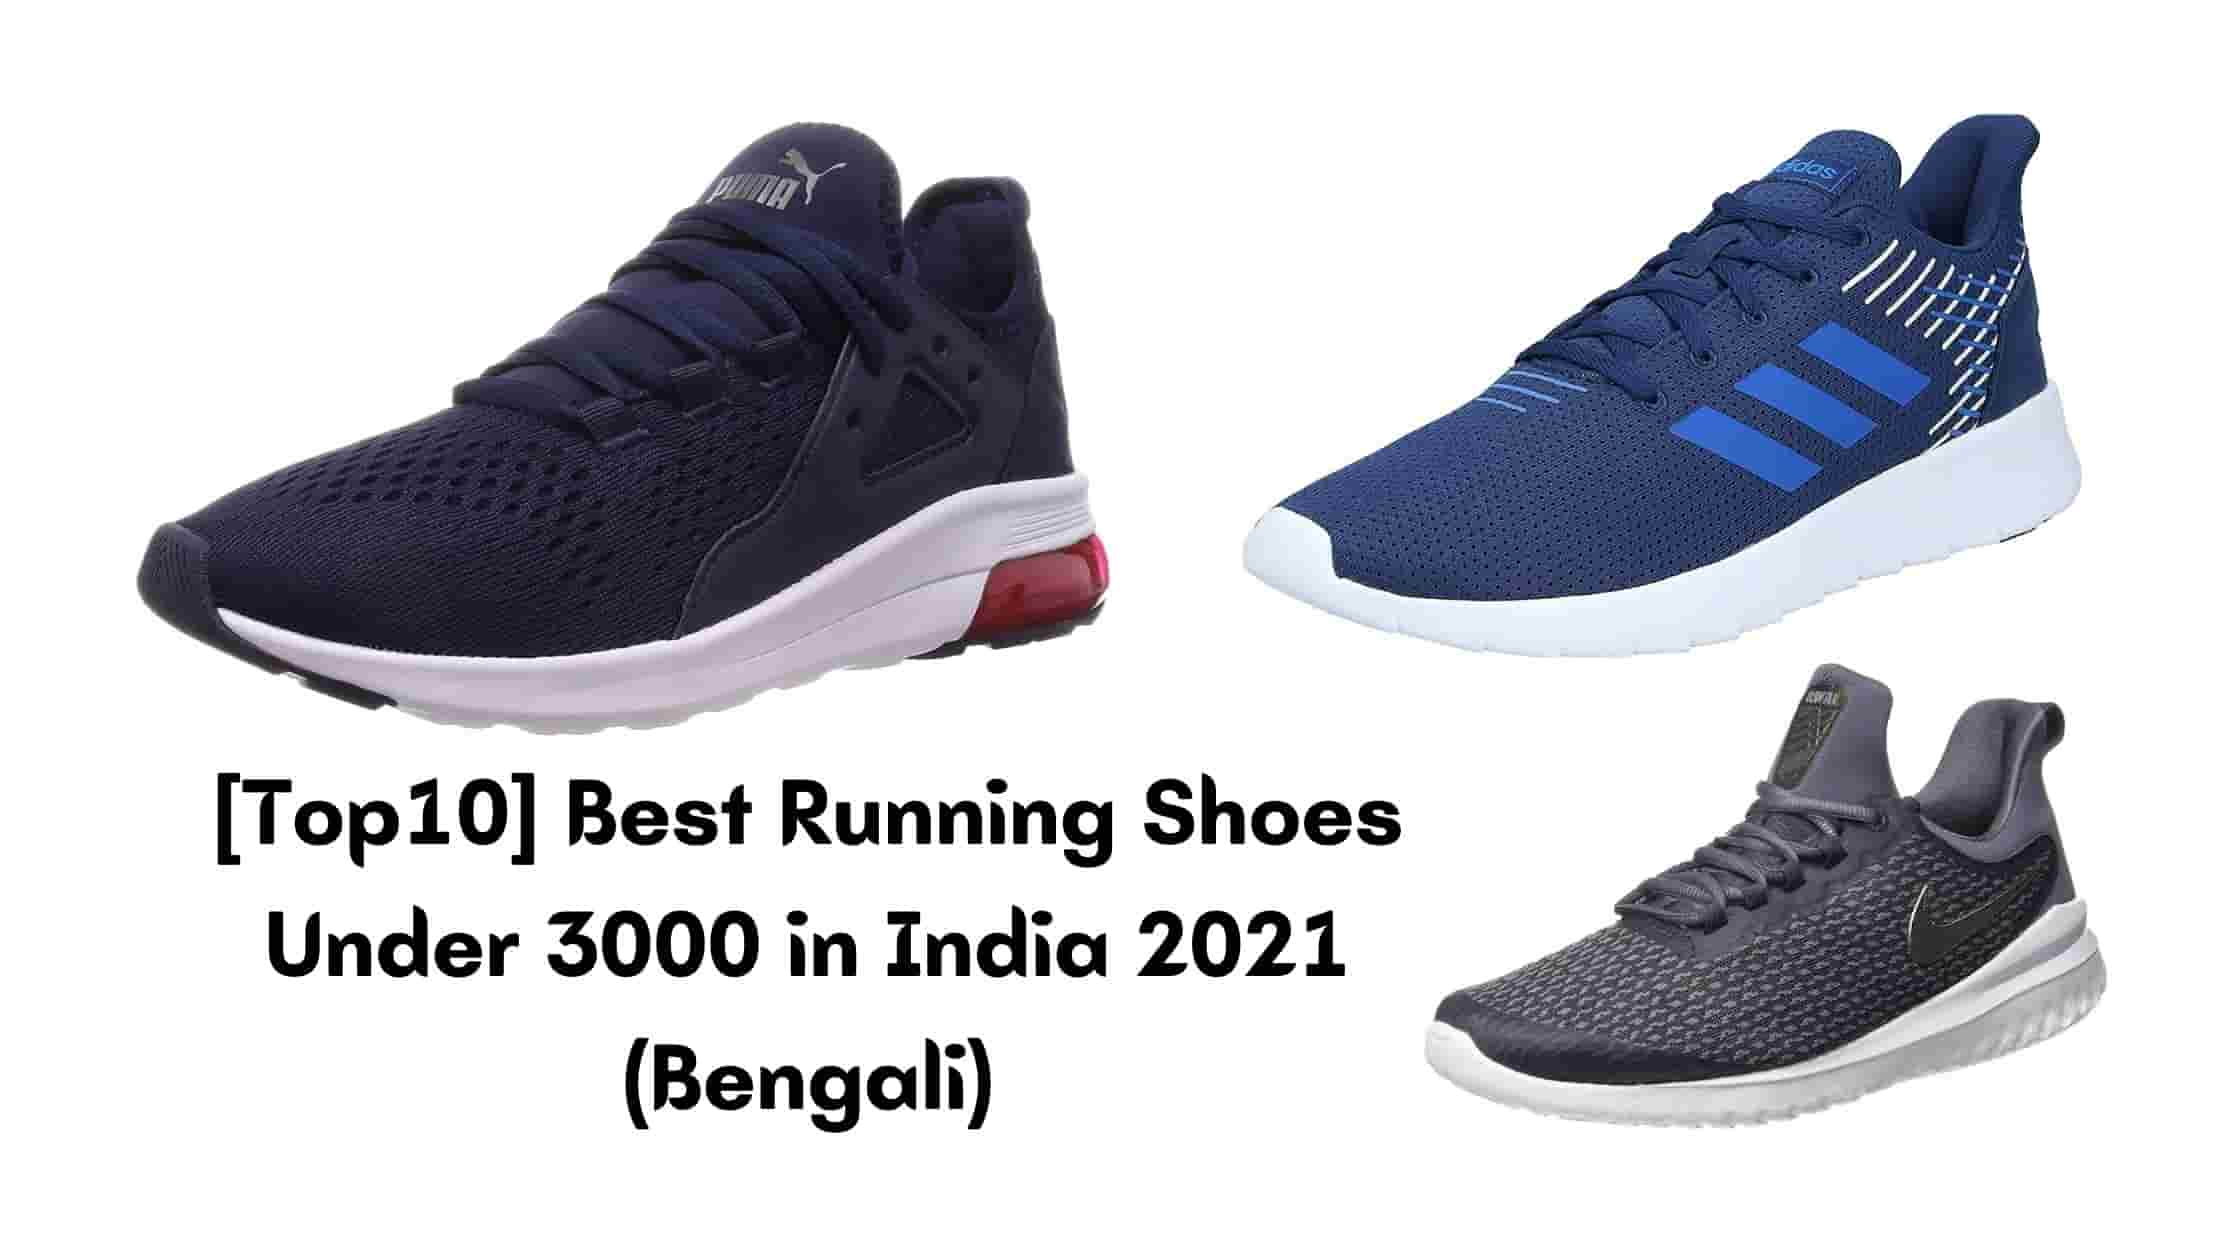 [Top10] Best Running Shoes Under 3000 in India 2021 (Bengali)